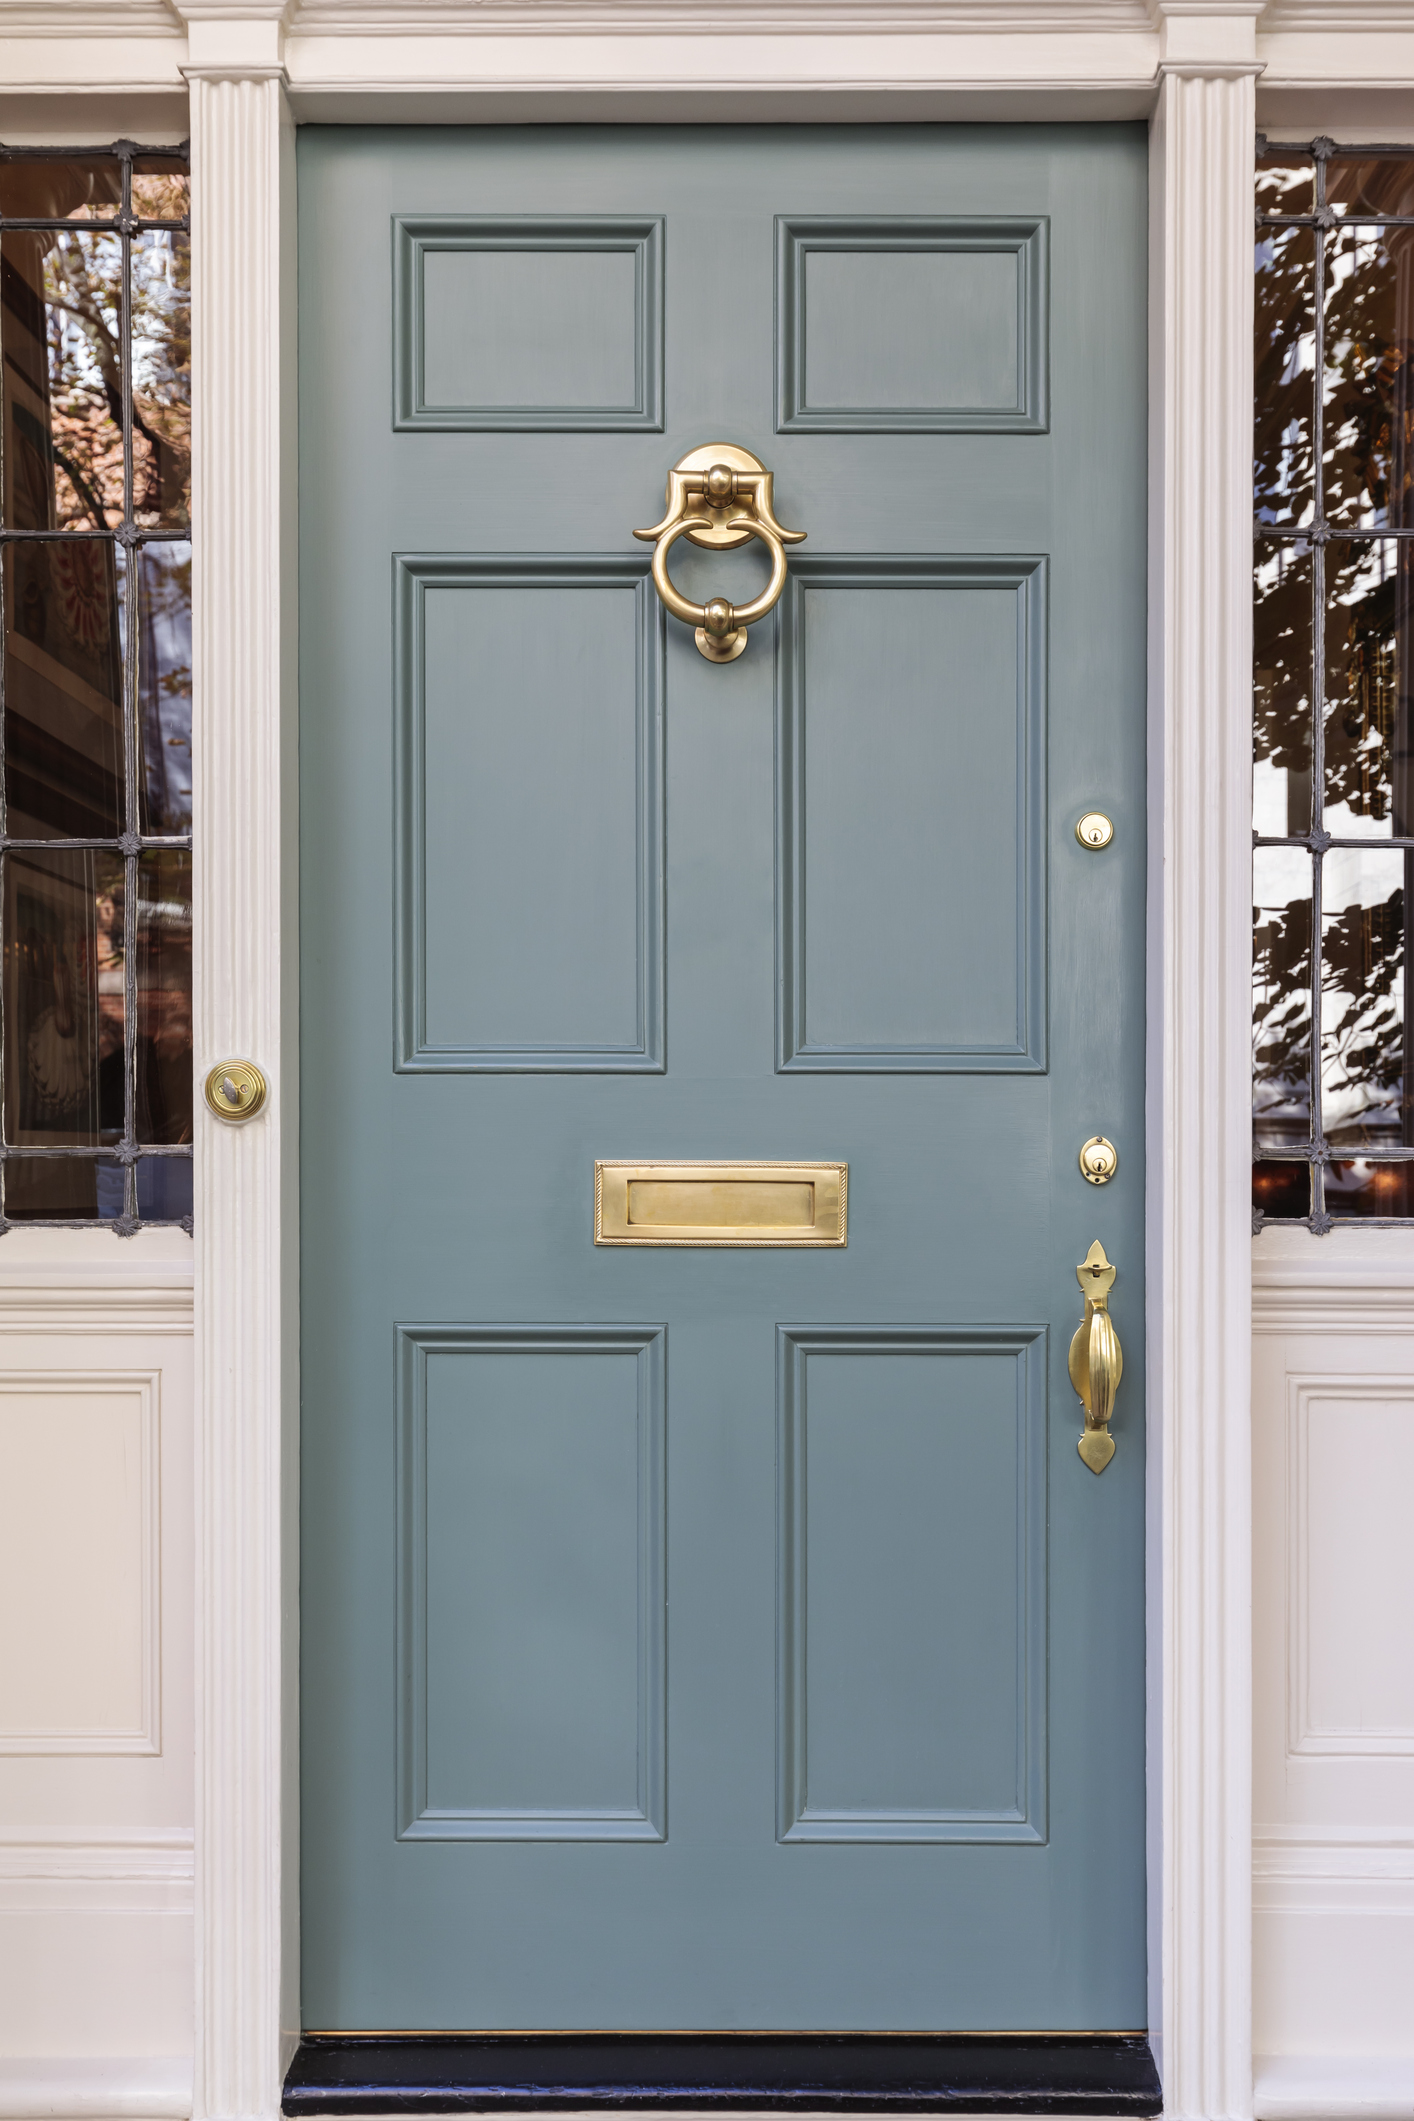 What Is The Best Material For A Front Door Mycoffeepot Org